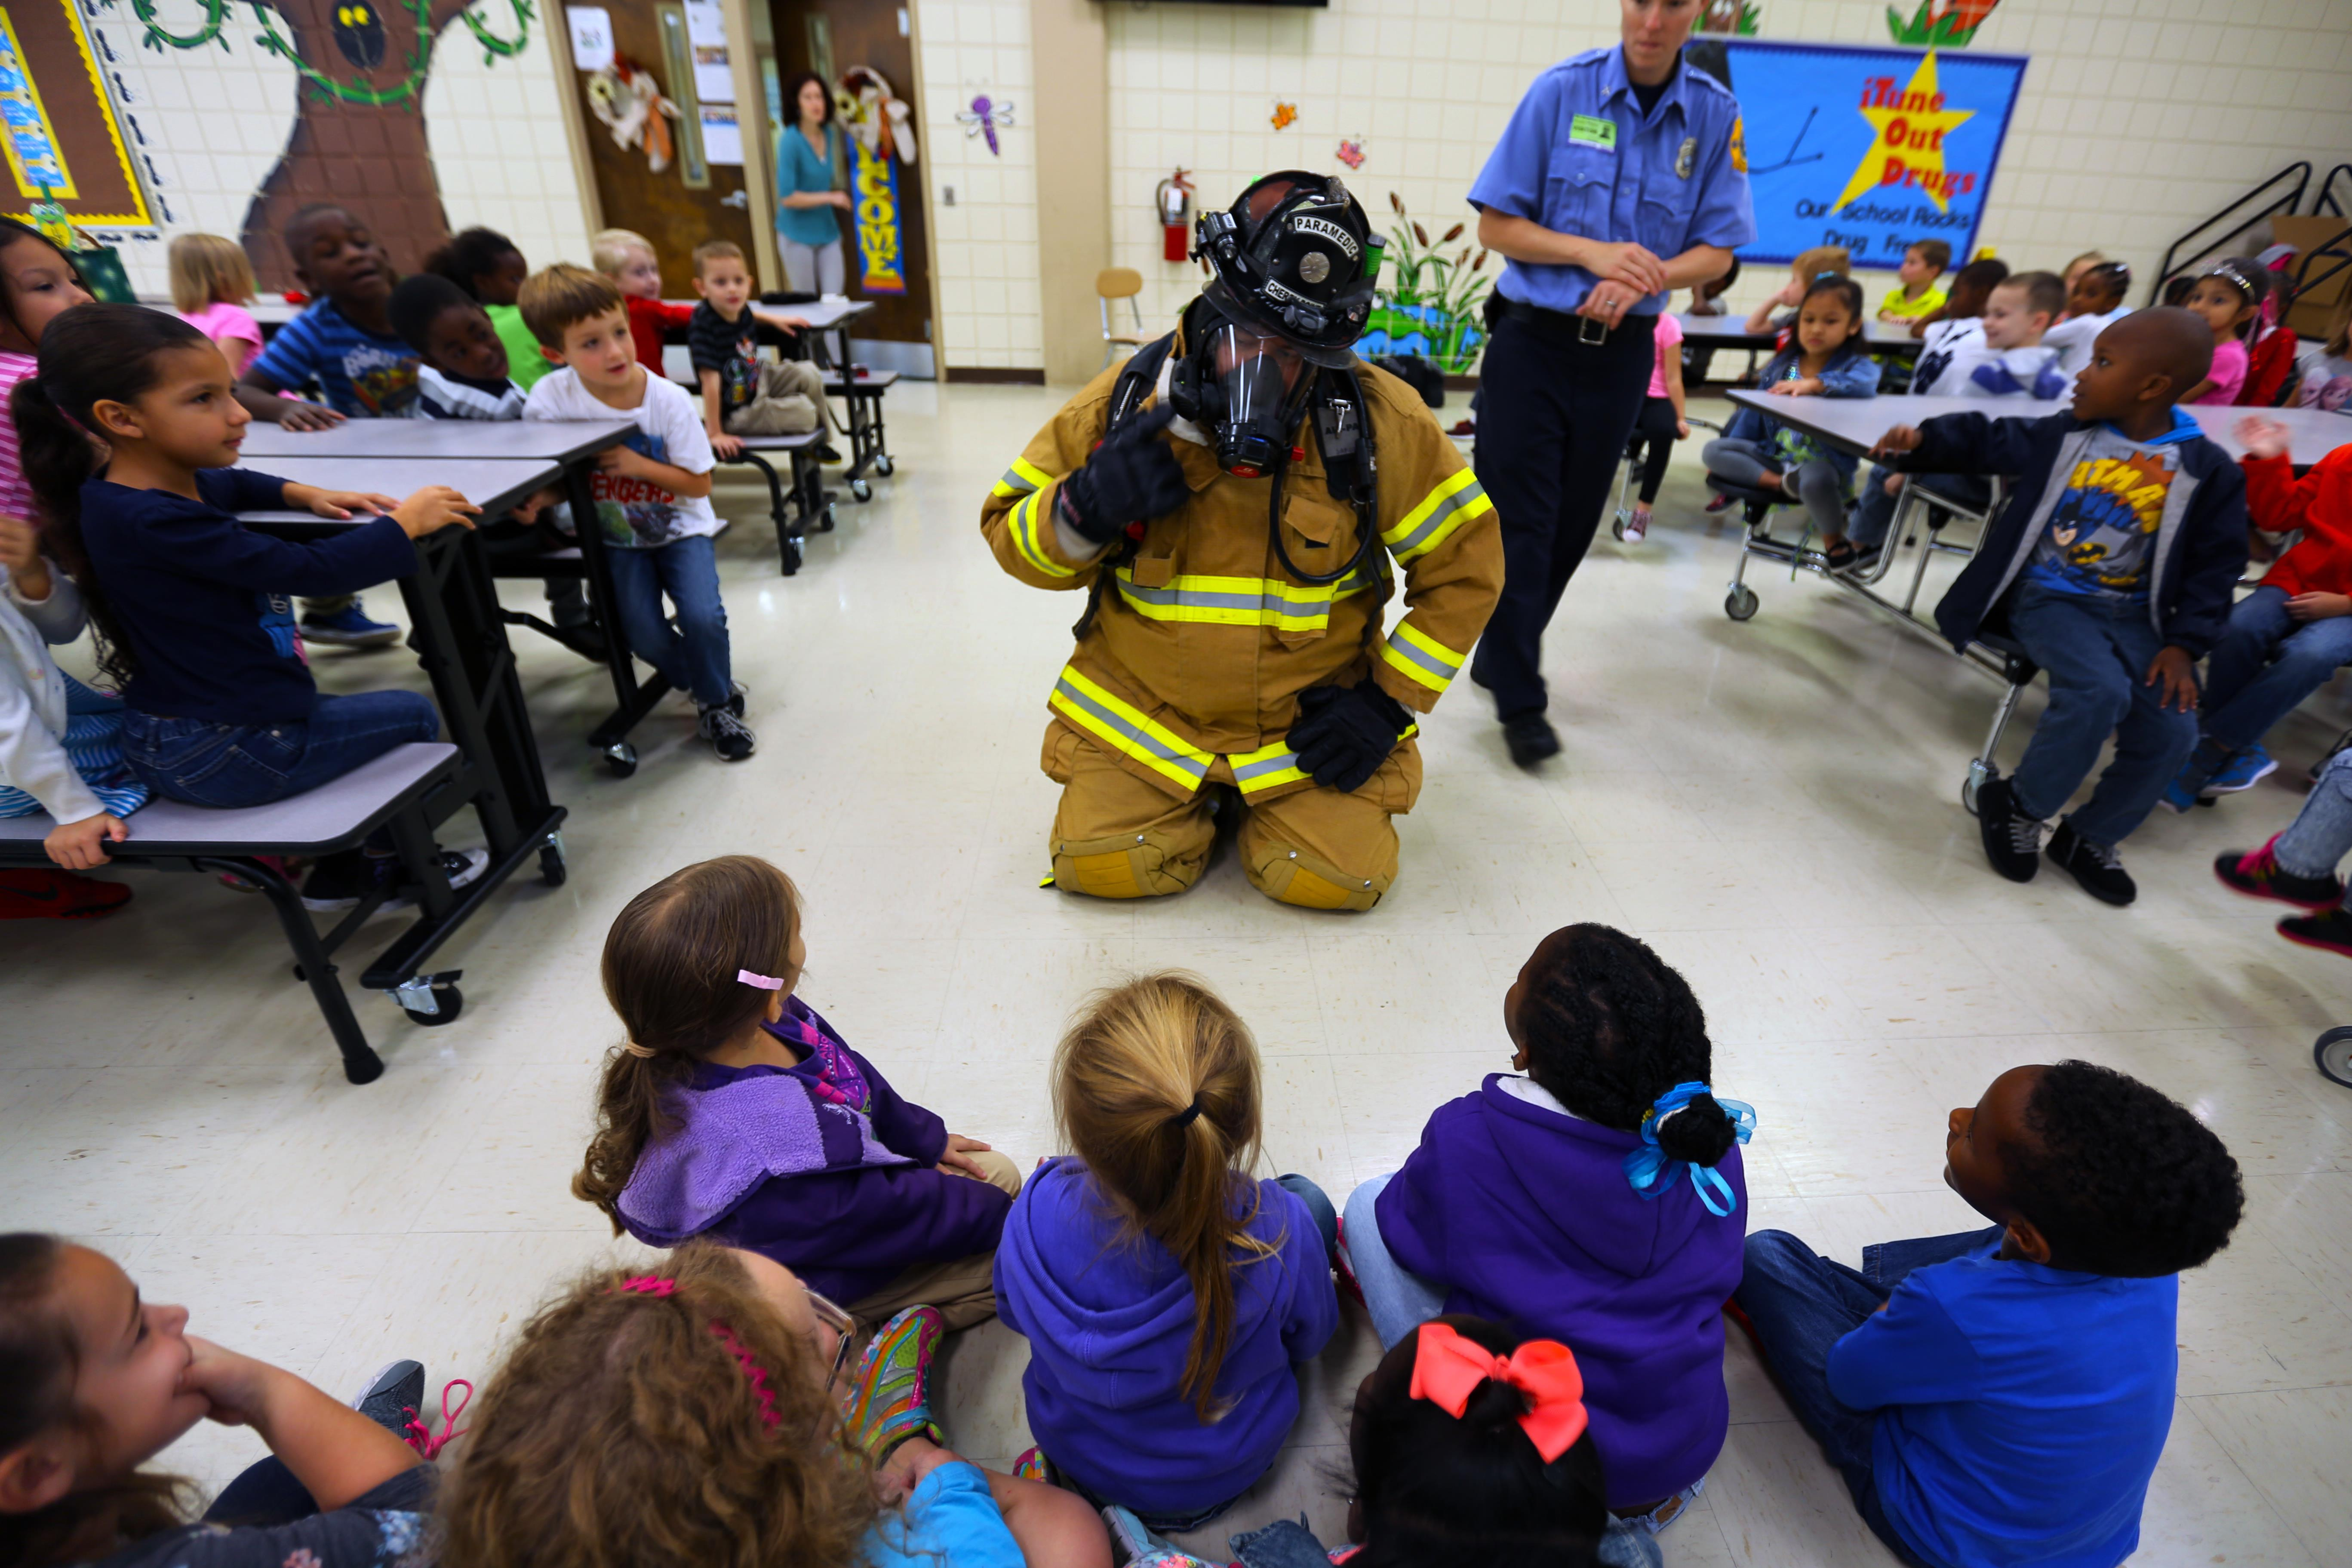 Firefighters Educate Local Elementary School Students On